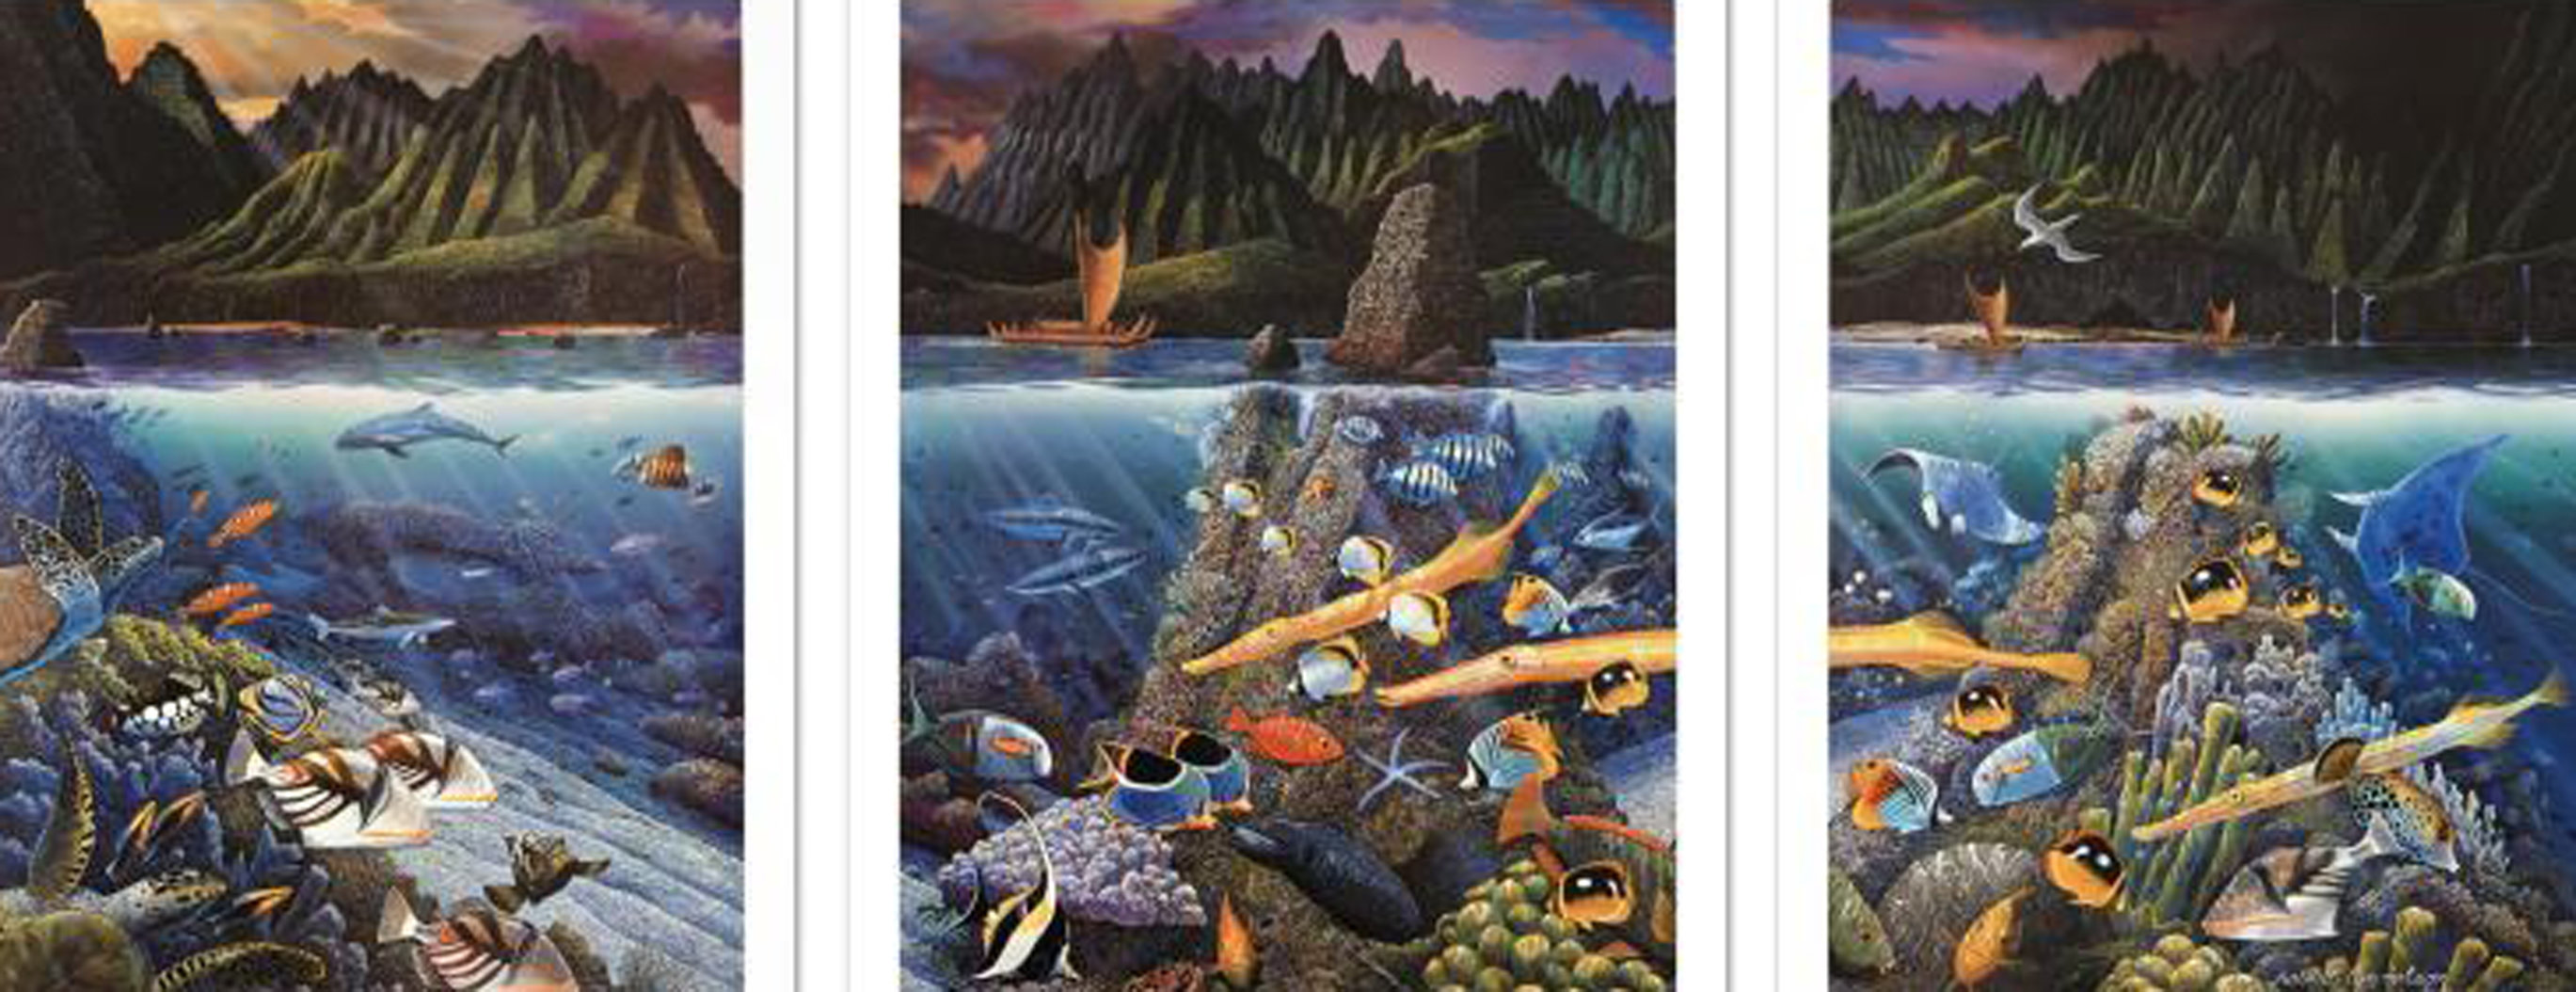 Chant to Nature 1998 Limited Edition Print by Robert Lyn Nelson